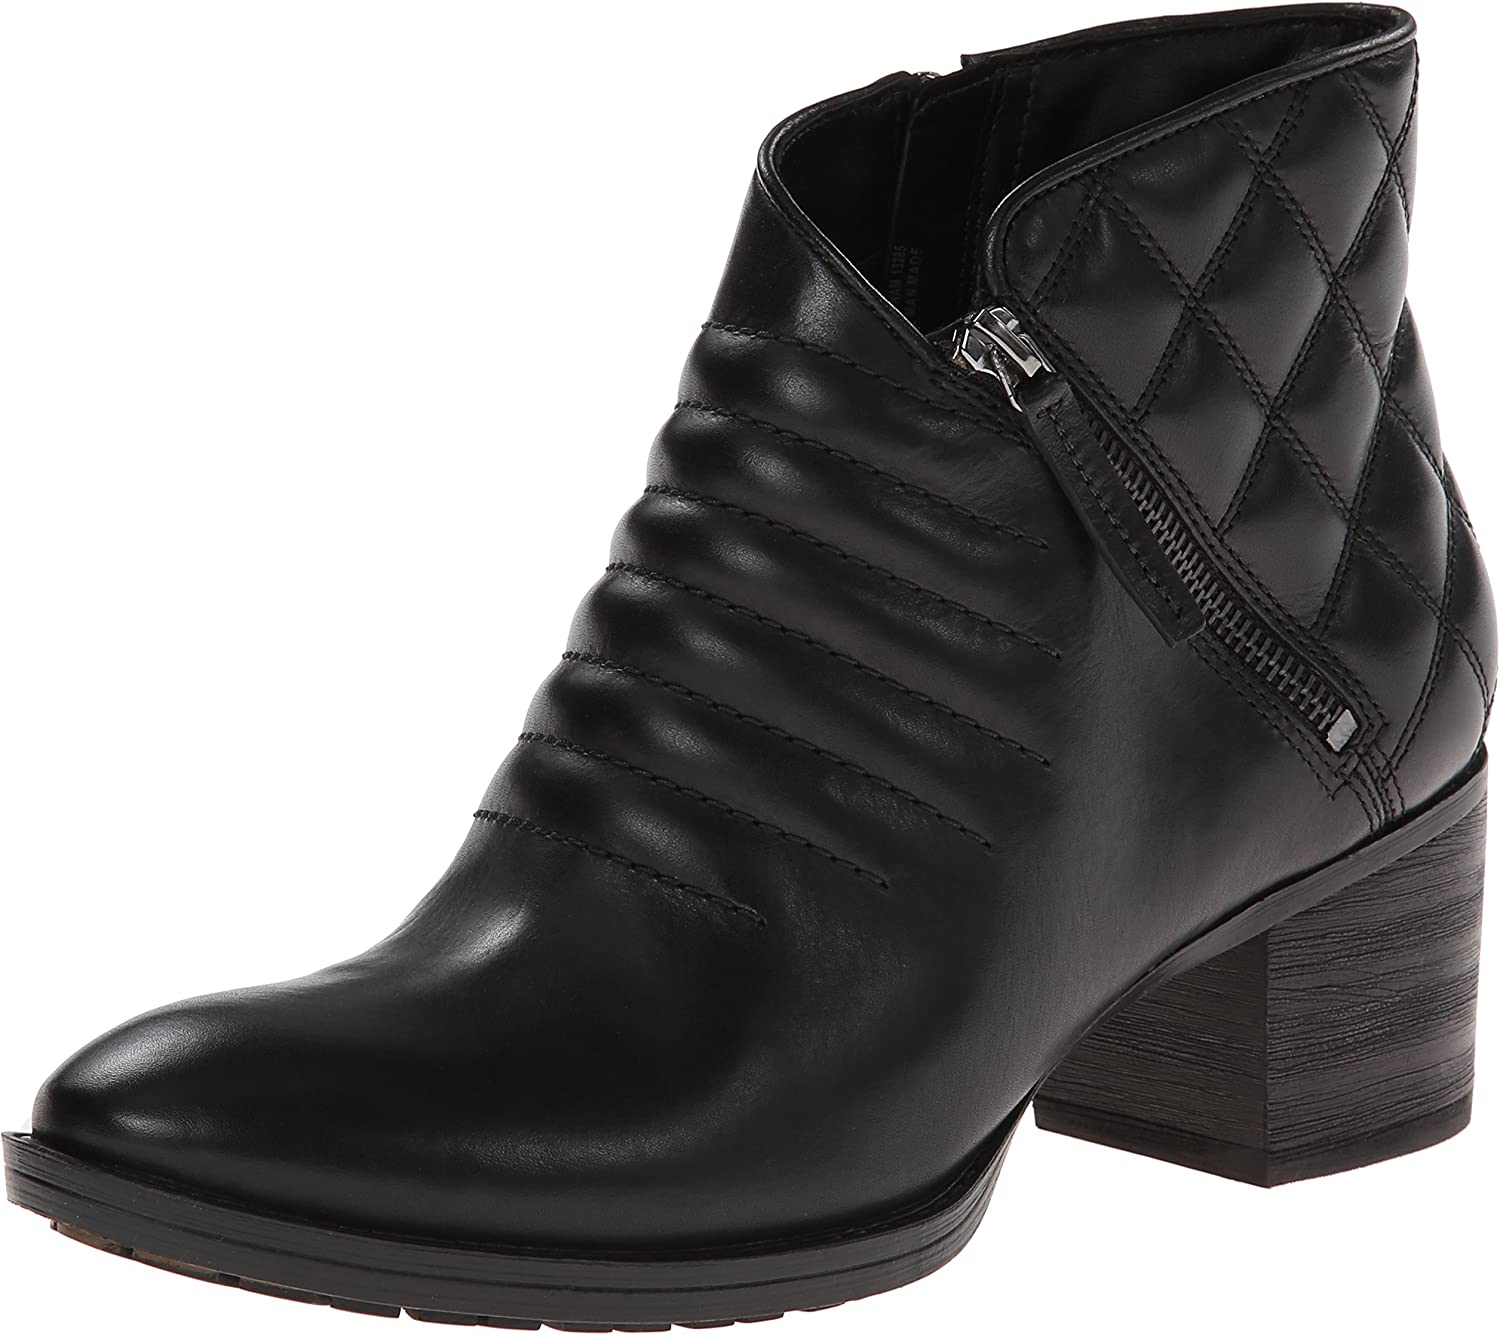 hur man köper kvalitet klassiska skor Amazon.com | CLARKS Movie Retro Womens Black Leather Boot 8-Medium ...